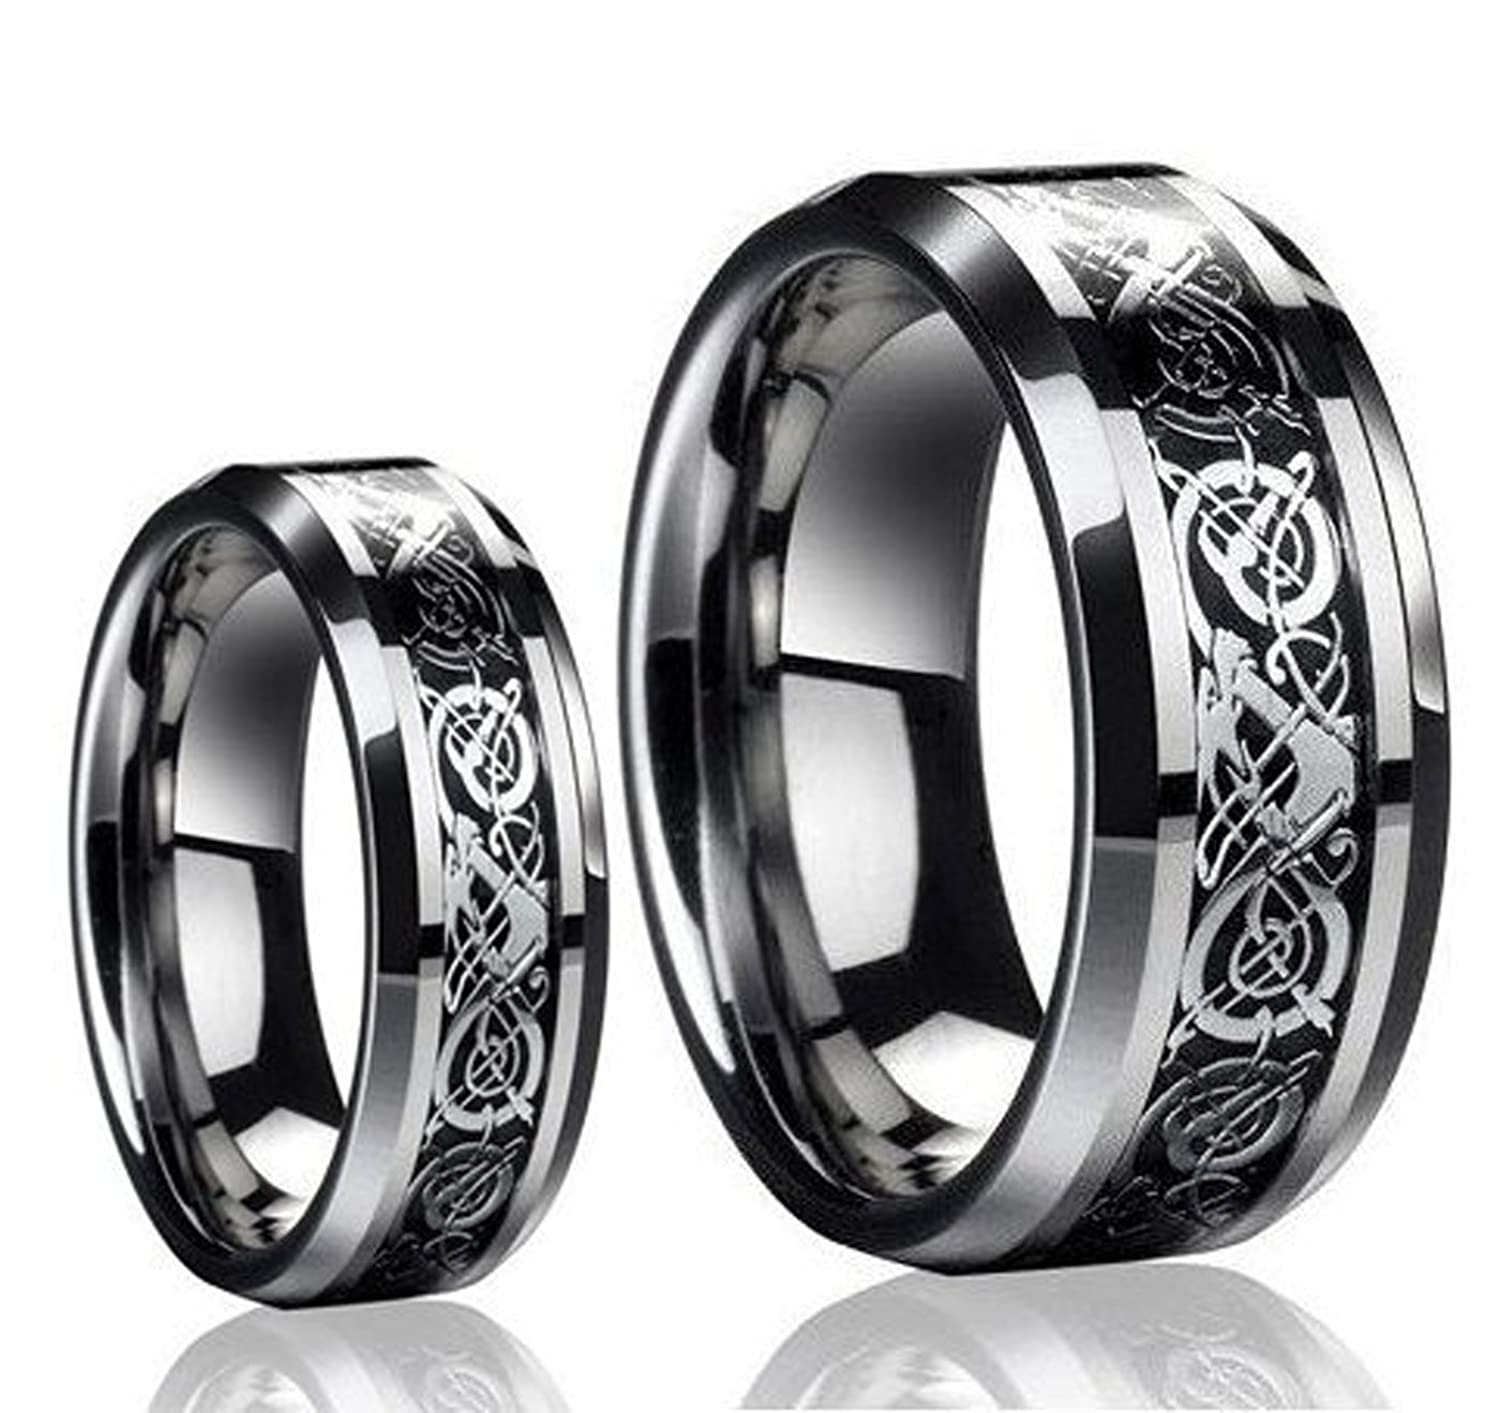 Men's & Ladie's 8mm/6mm the Celtic Loved Design Tungsten Carbide Wedding Band Ring Set (Available Sizes 5-13 Including Half Sizes